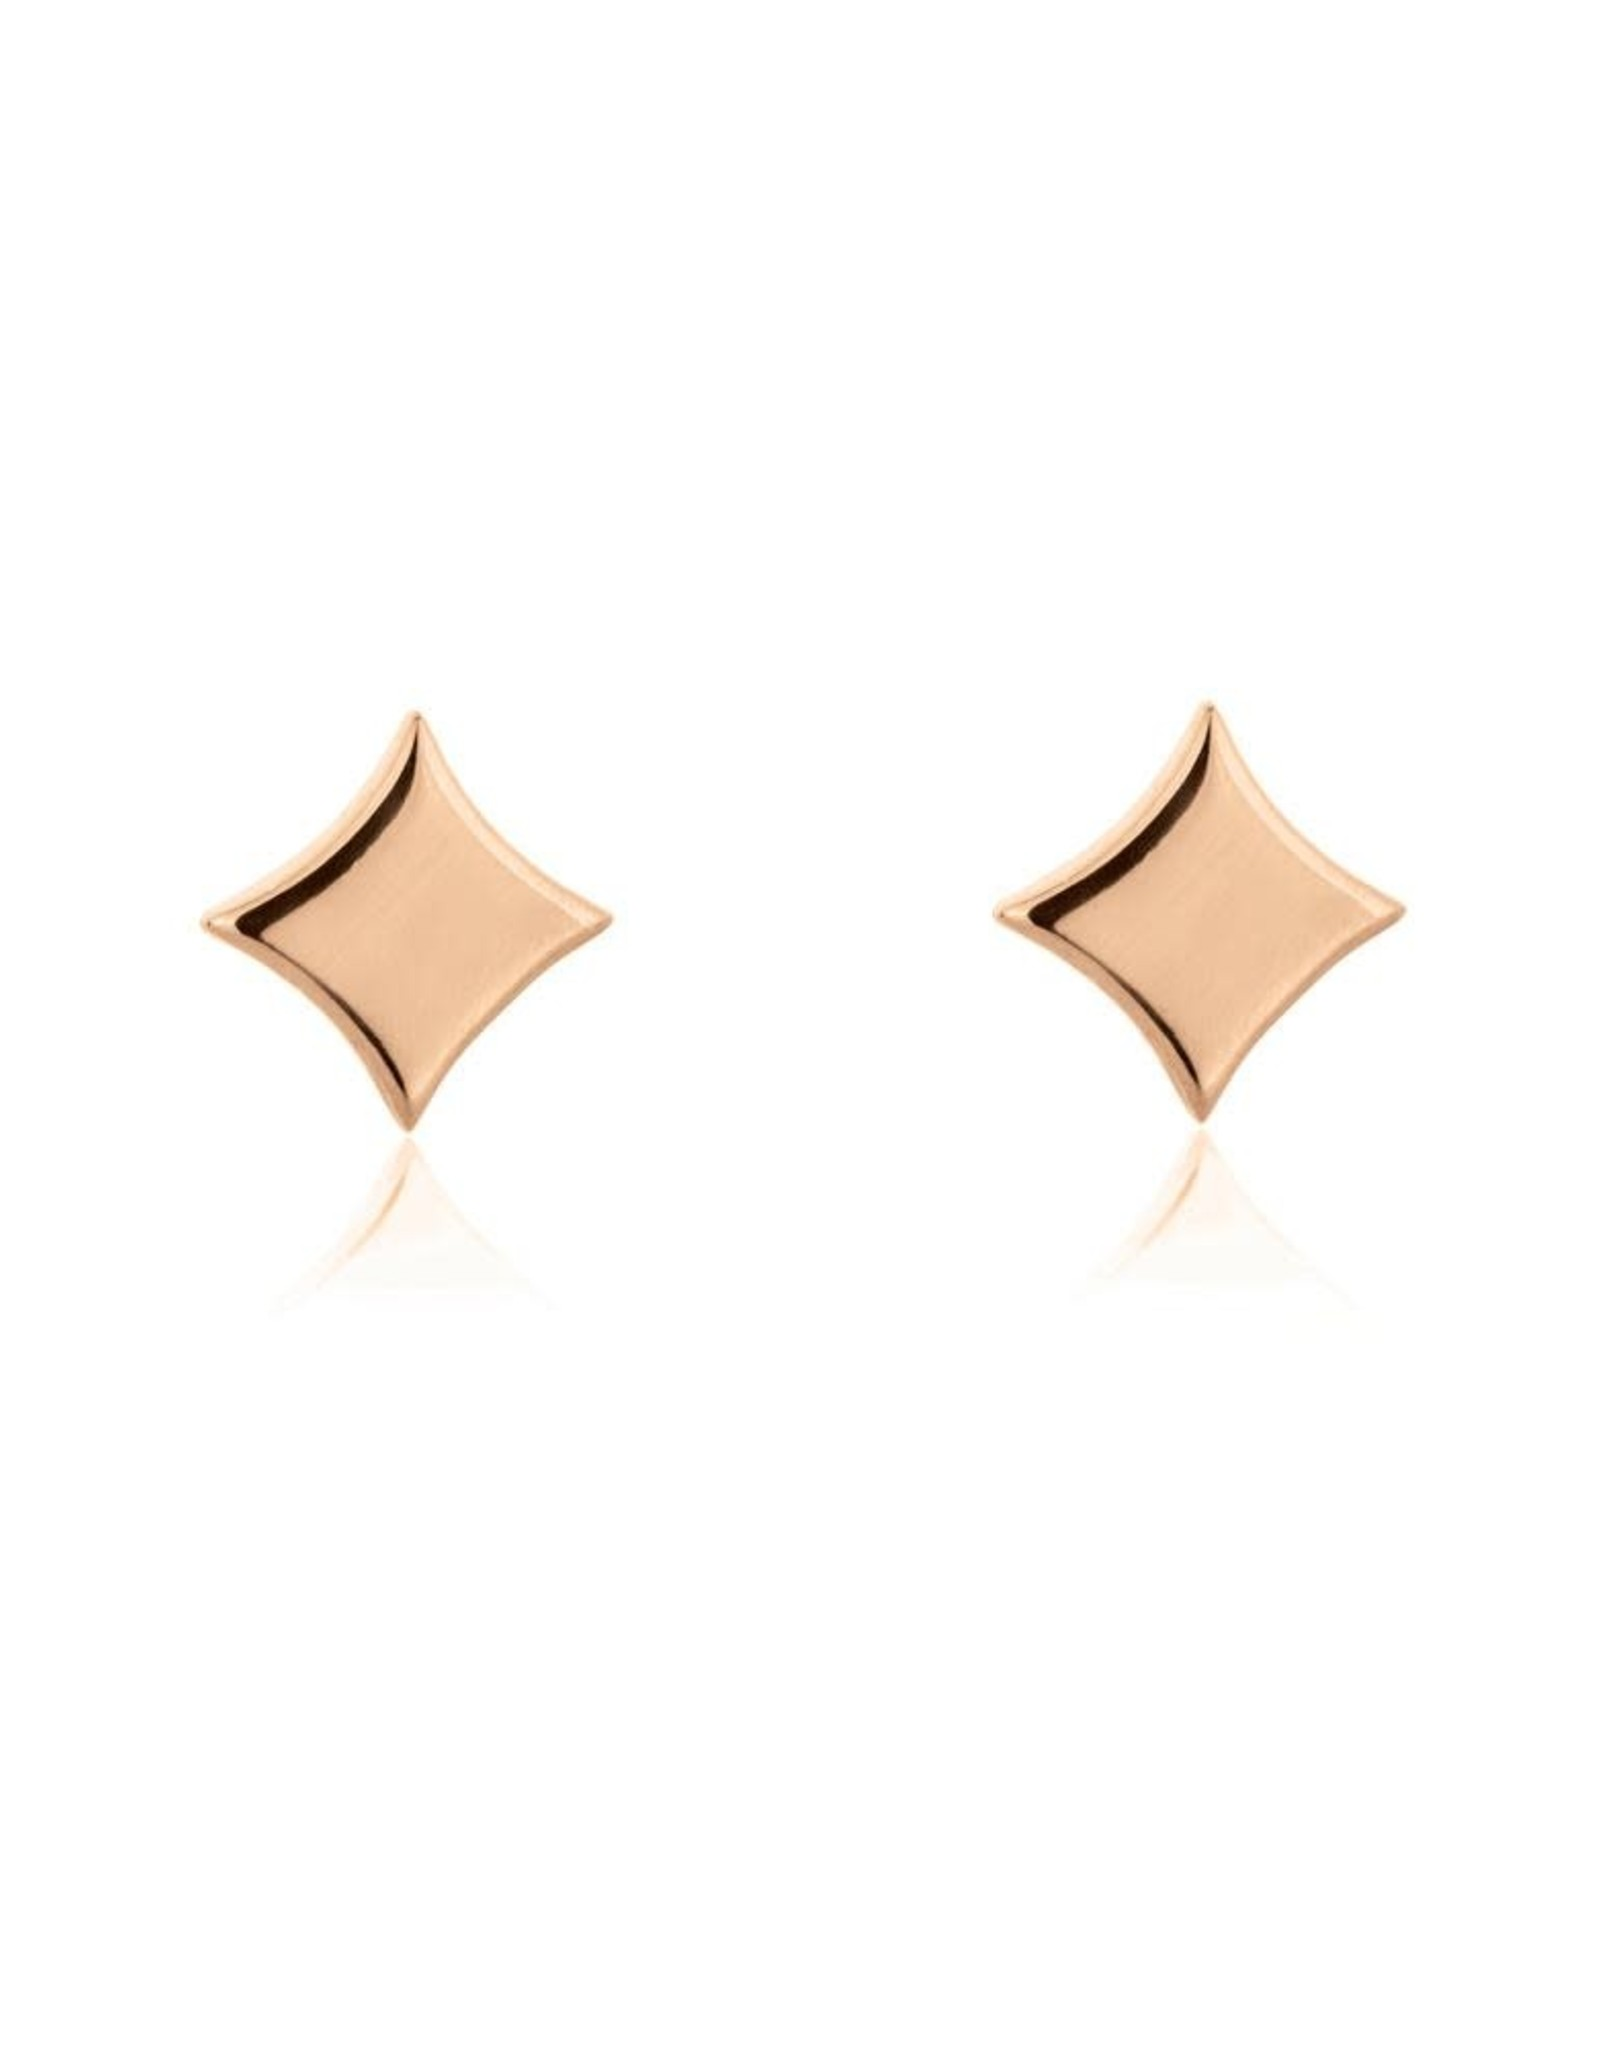 Linda Tahija Night Star Stud Earring